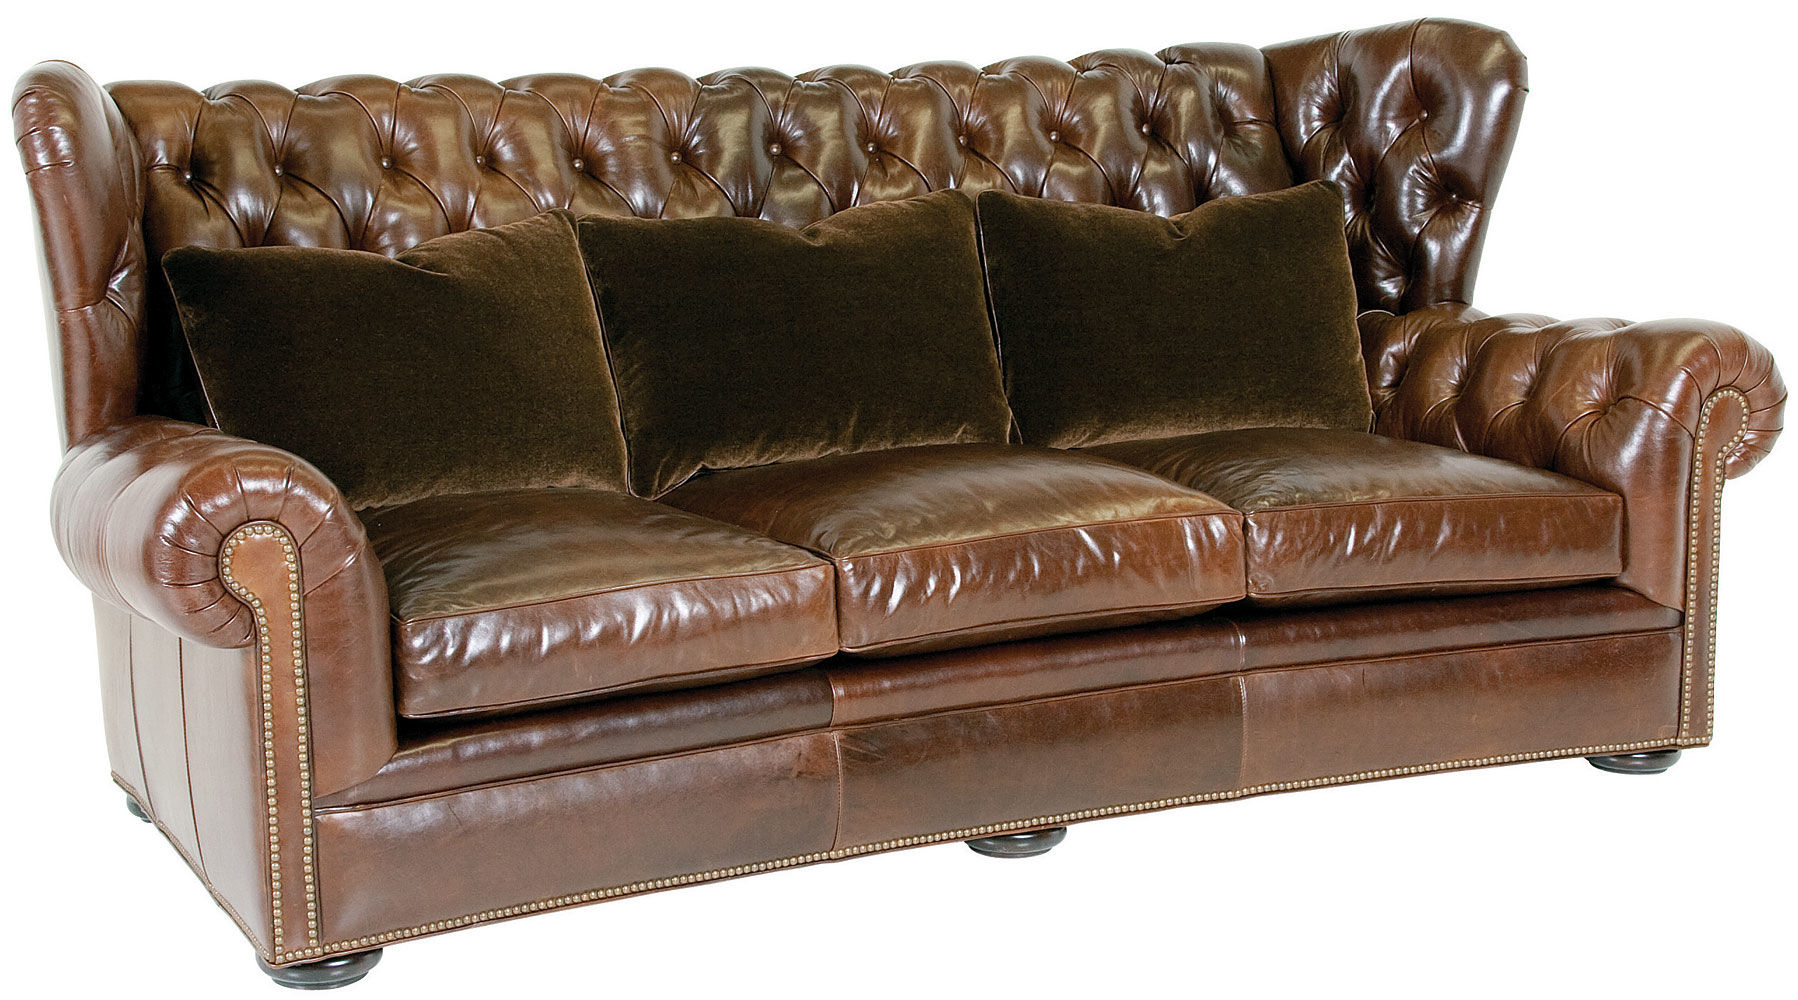 beautiful high back sectional sofas image-Latest High Back Sectional sofas Décor